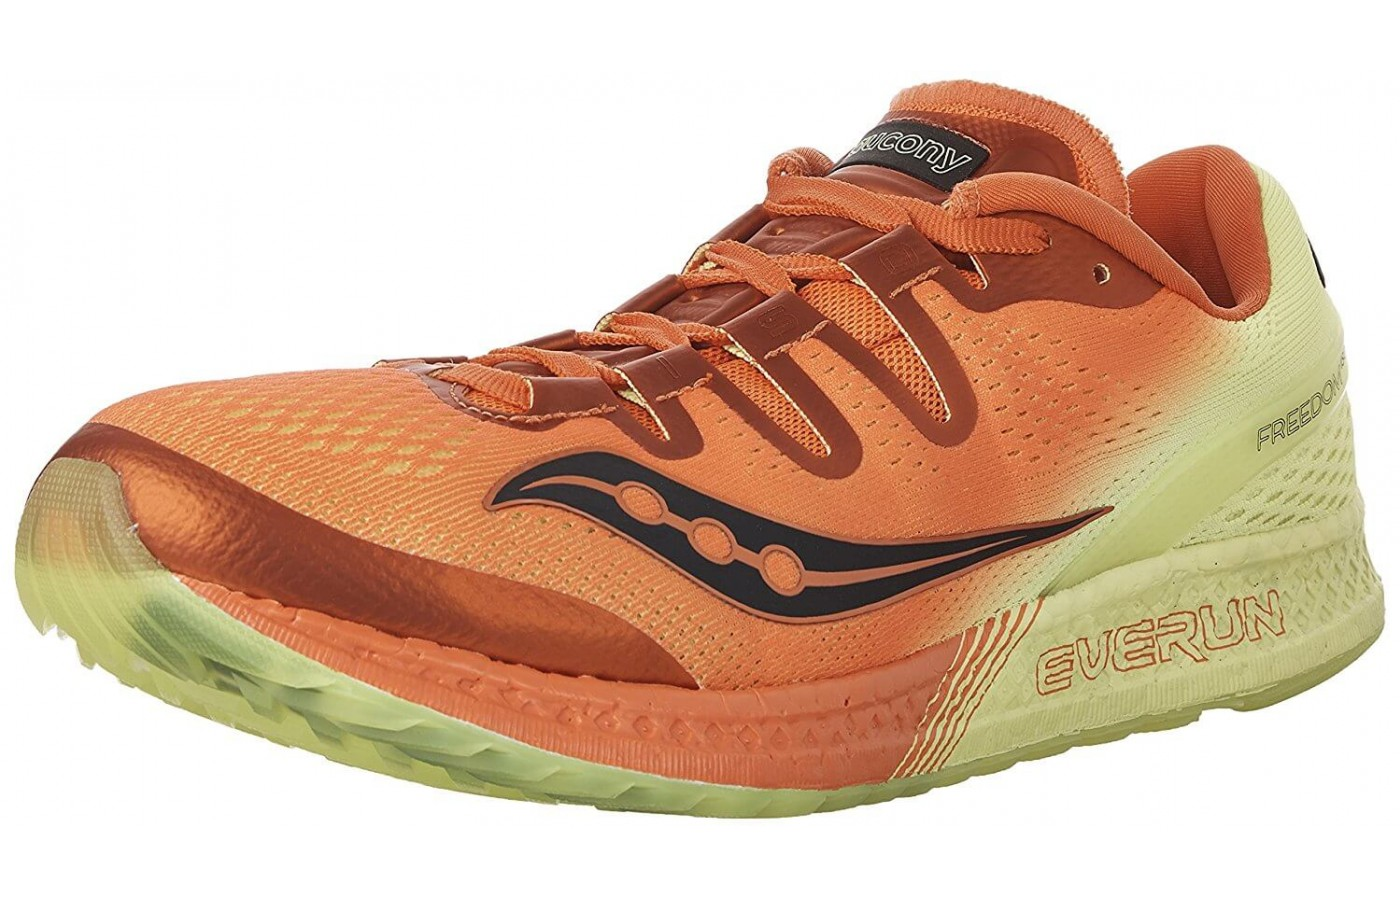 An in depth review of the Saucony Liberty Iso